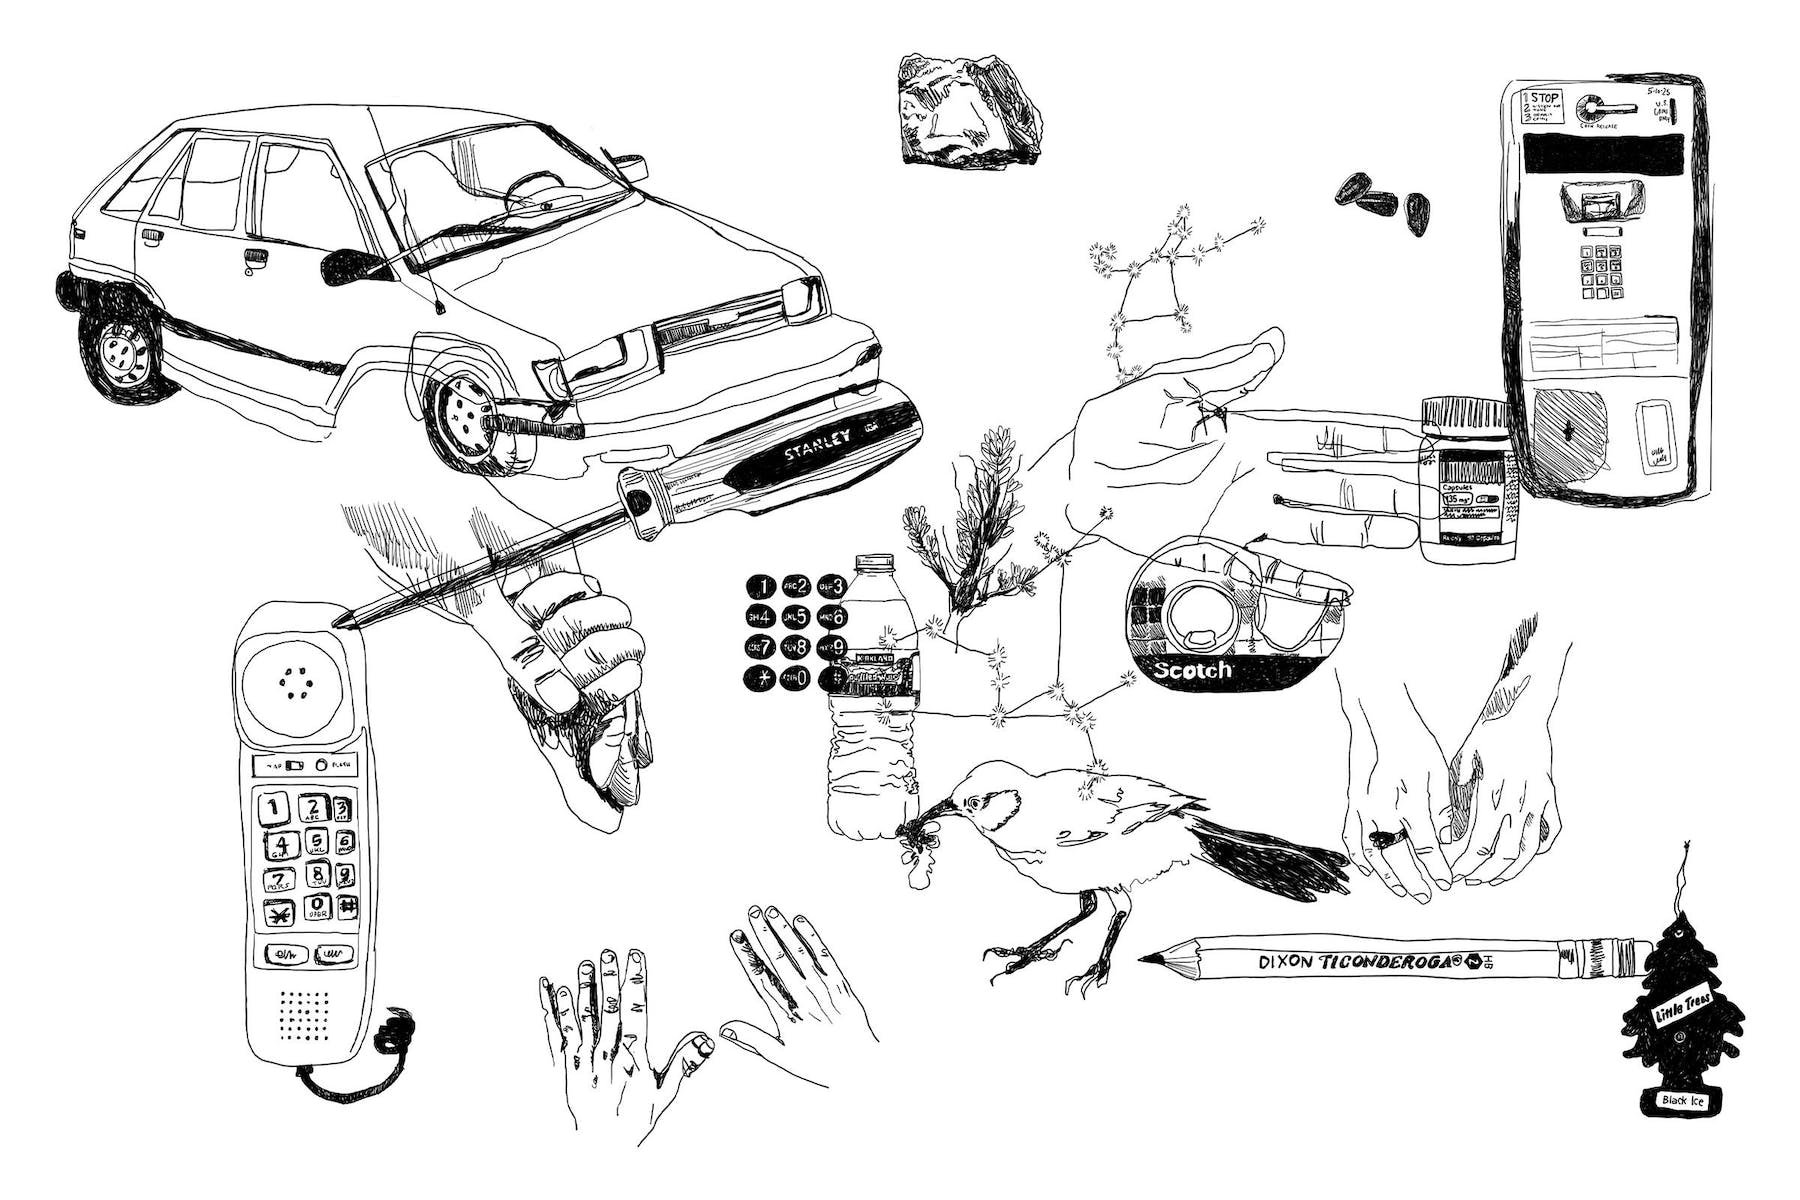 Collage of line drawings of various elements; car, bird, phone, hands, pencil